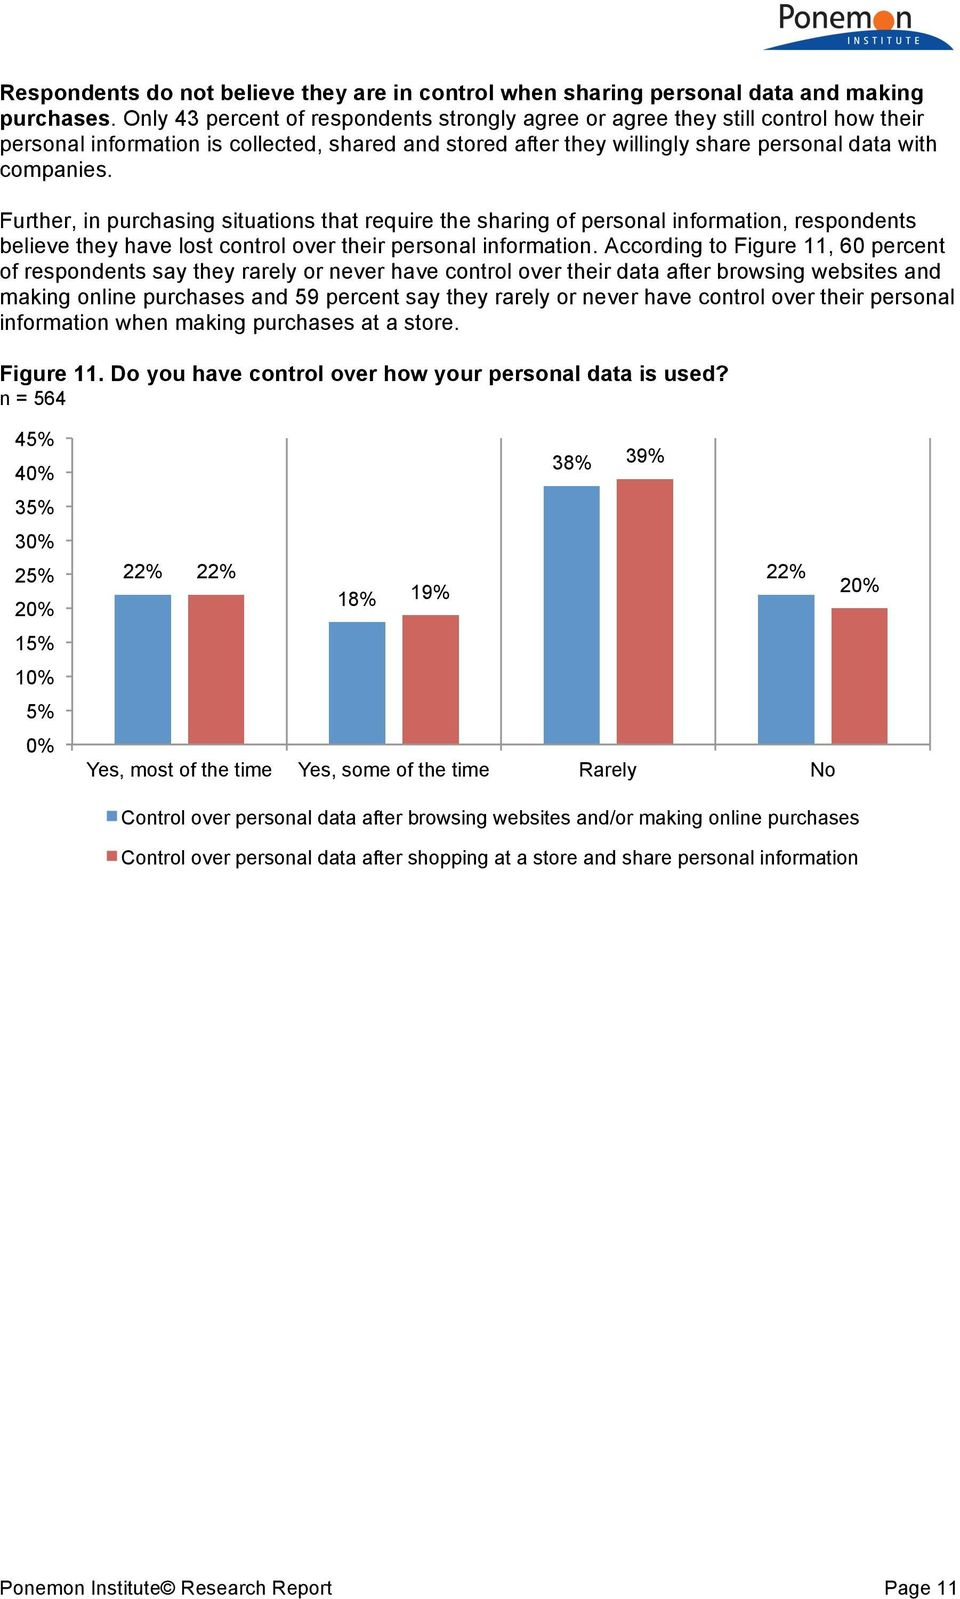 Further, in purchasing situations that require the sharing of personal information, respondents believe they have lost control over their personal information.